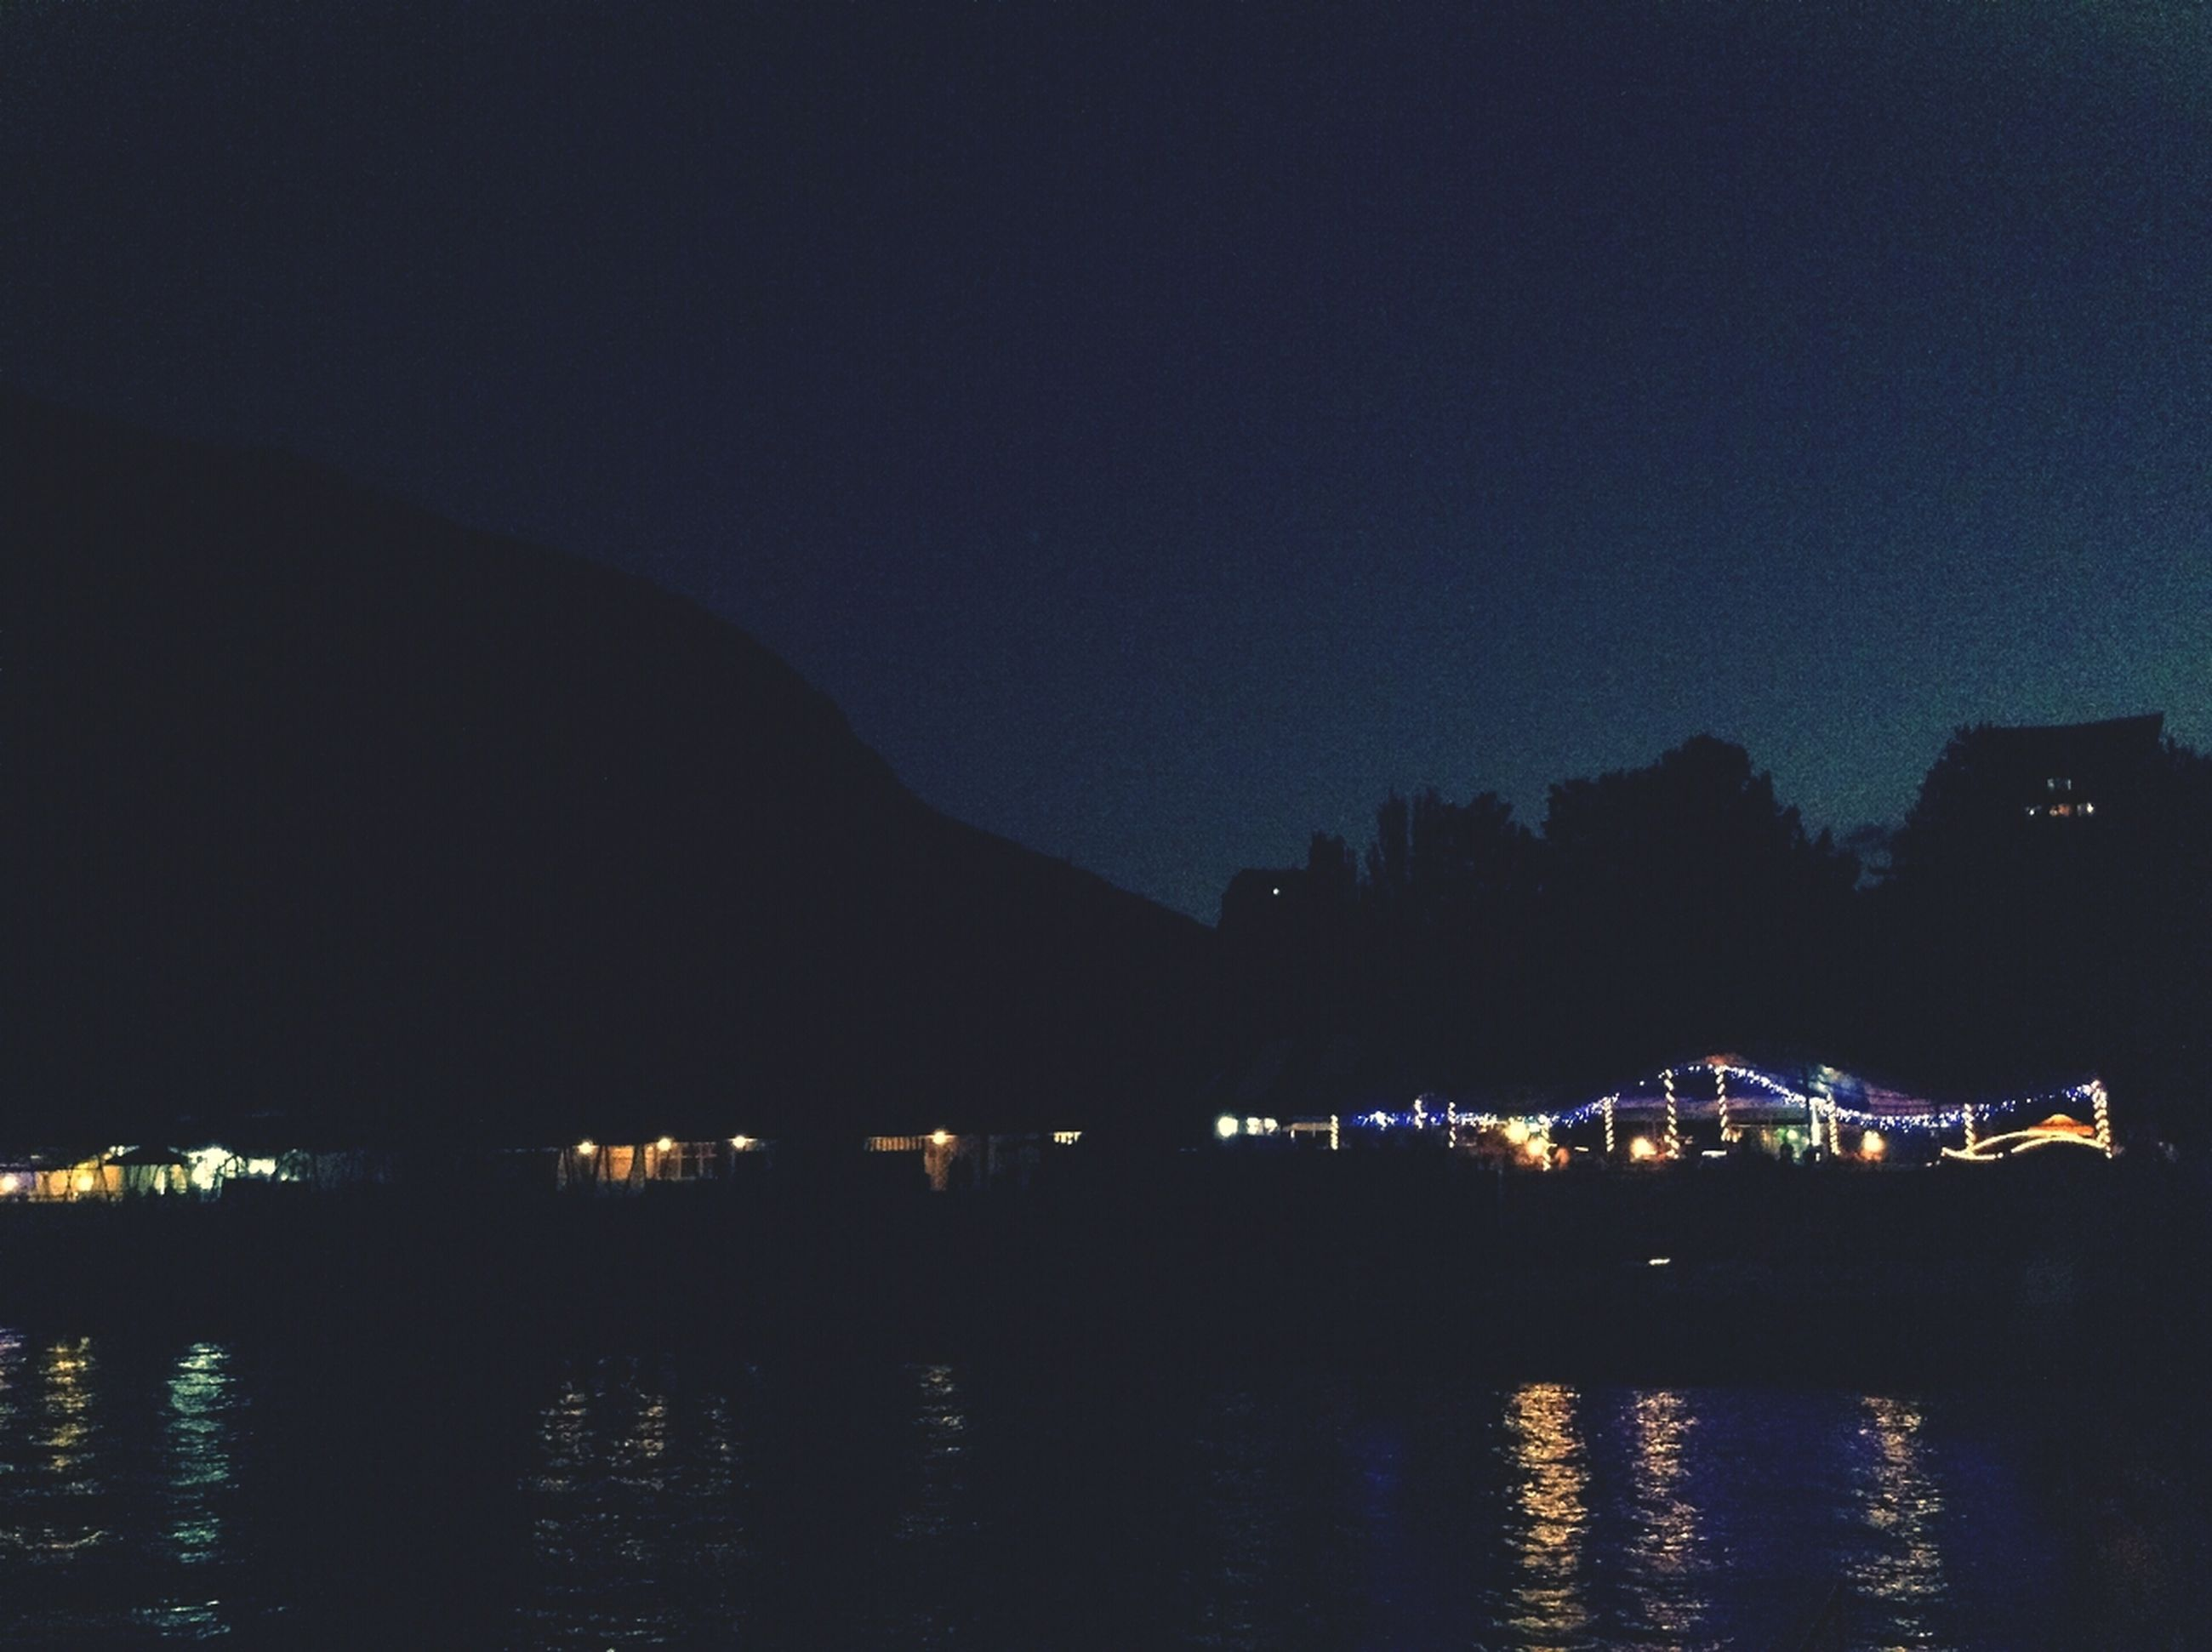 illuminated, night, water, waterfront, reflection, building exterior, built structure, river, architecture, scenics, sky, lake, tranquil scene, tranquility, beauty in nature, silhouette, mountain, dusk, nature, copy space